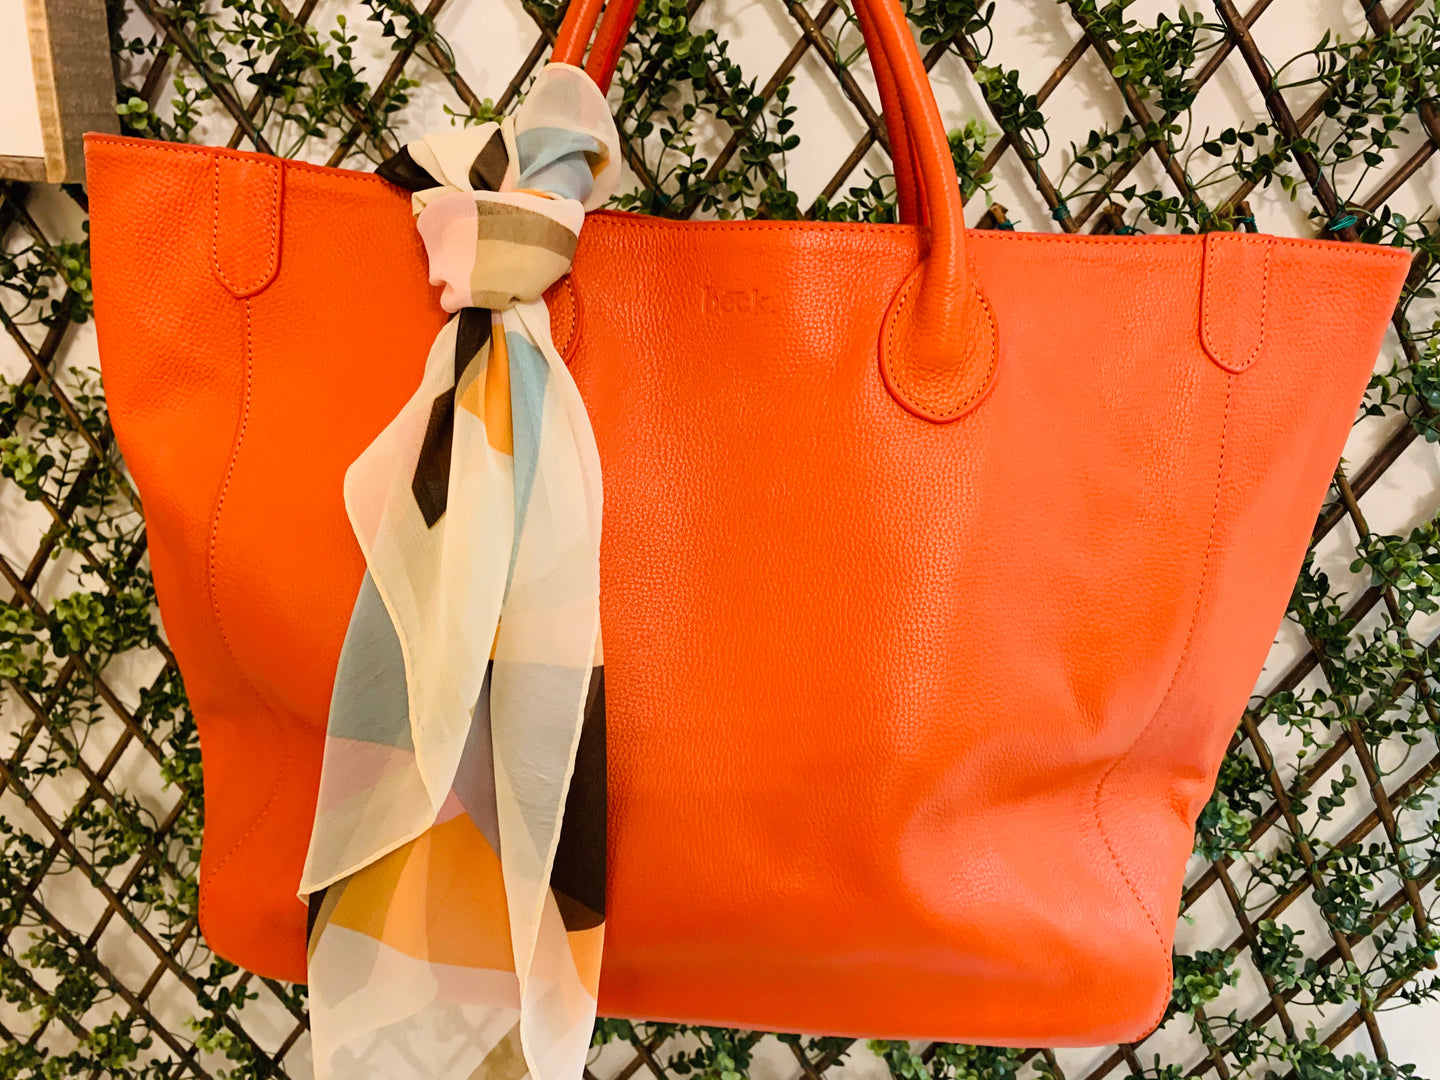 Beck Bags/Large Orange Tote (FINAL SALE)